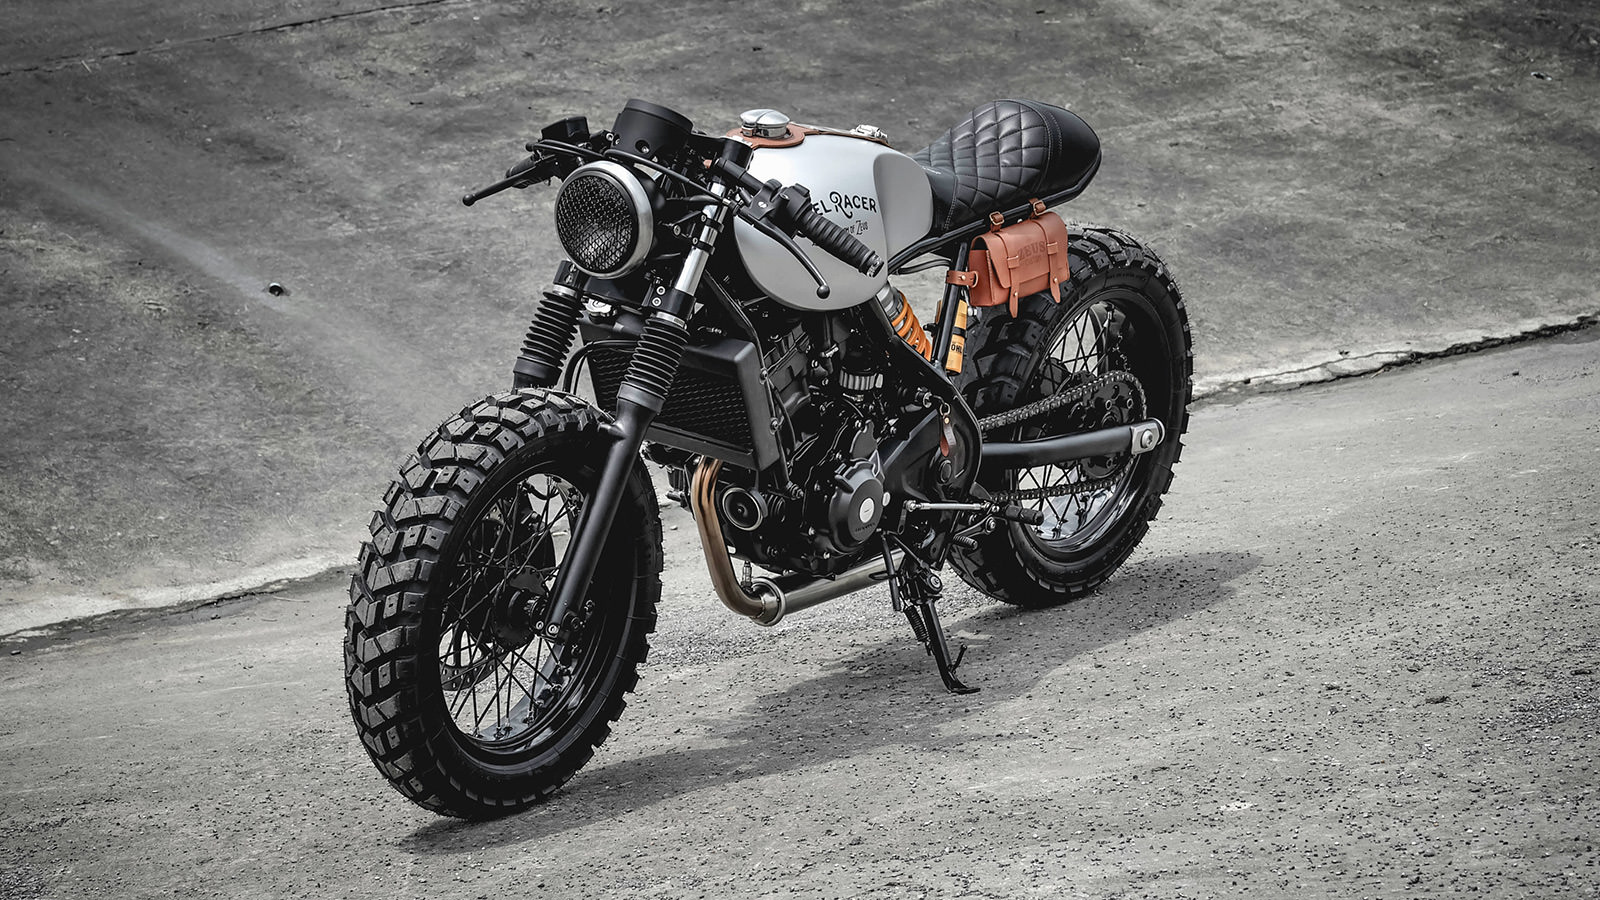 Mad Max Motorcycle >> Zeus Custom Honda 300 Rebel Racer - IMBOLDN